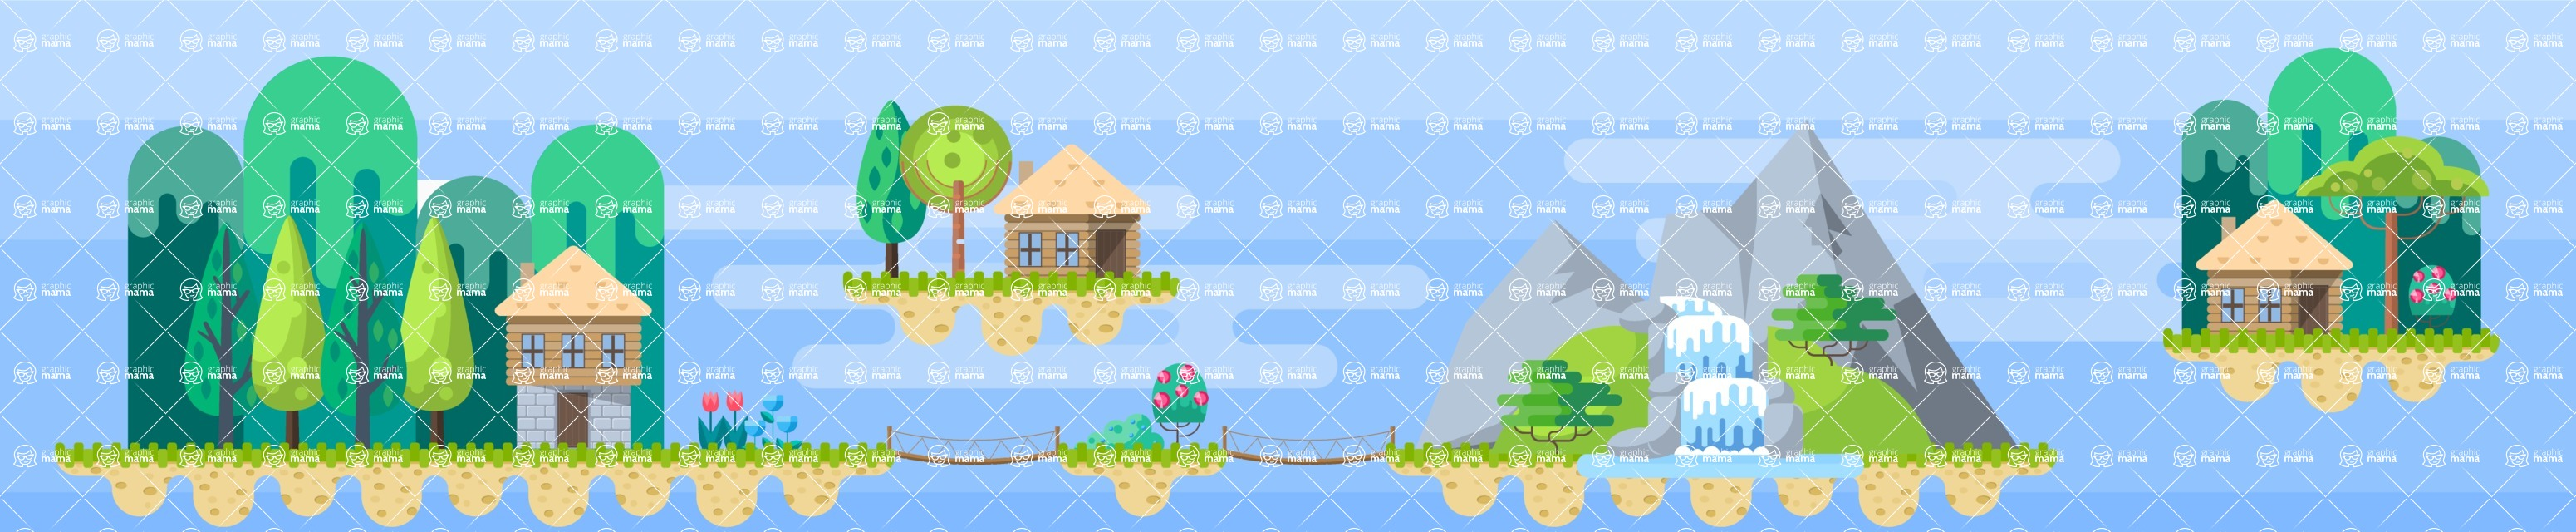 Background Vector Creation pack. A rich collection of flat vector elements for nature landscapes, city skylines, futuristic towns, fantastic scenes.  - Backgrounds 34